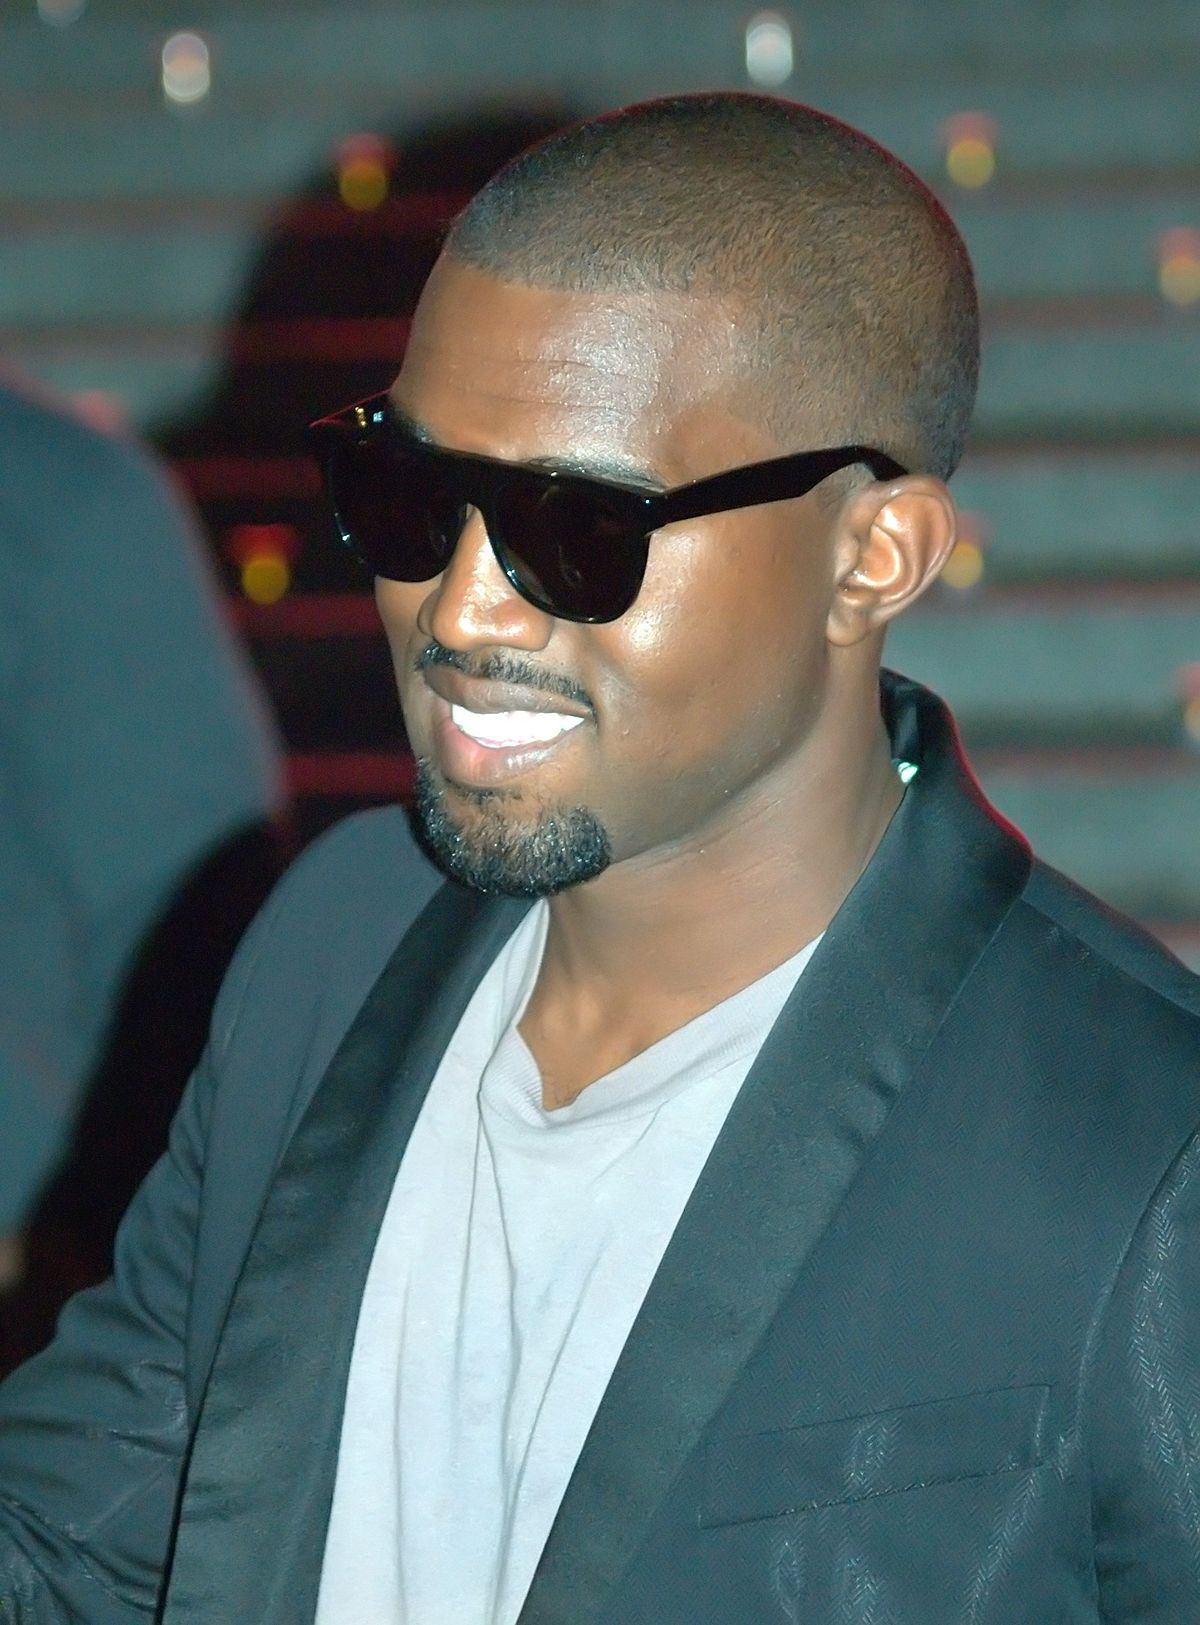 Kanye West Videography Wikipedia